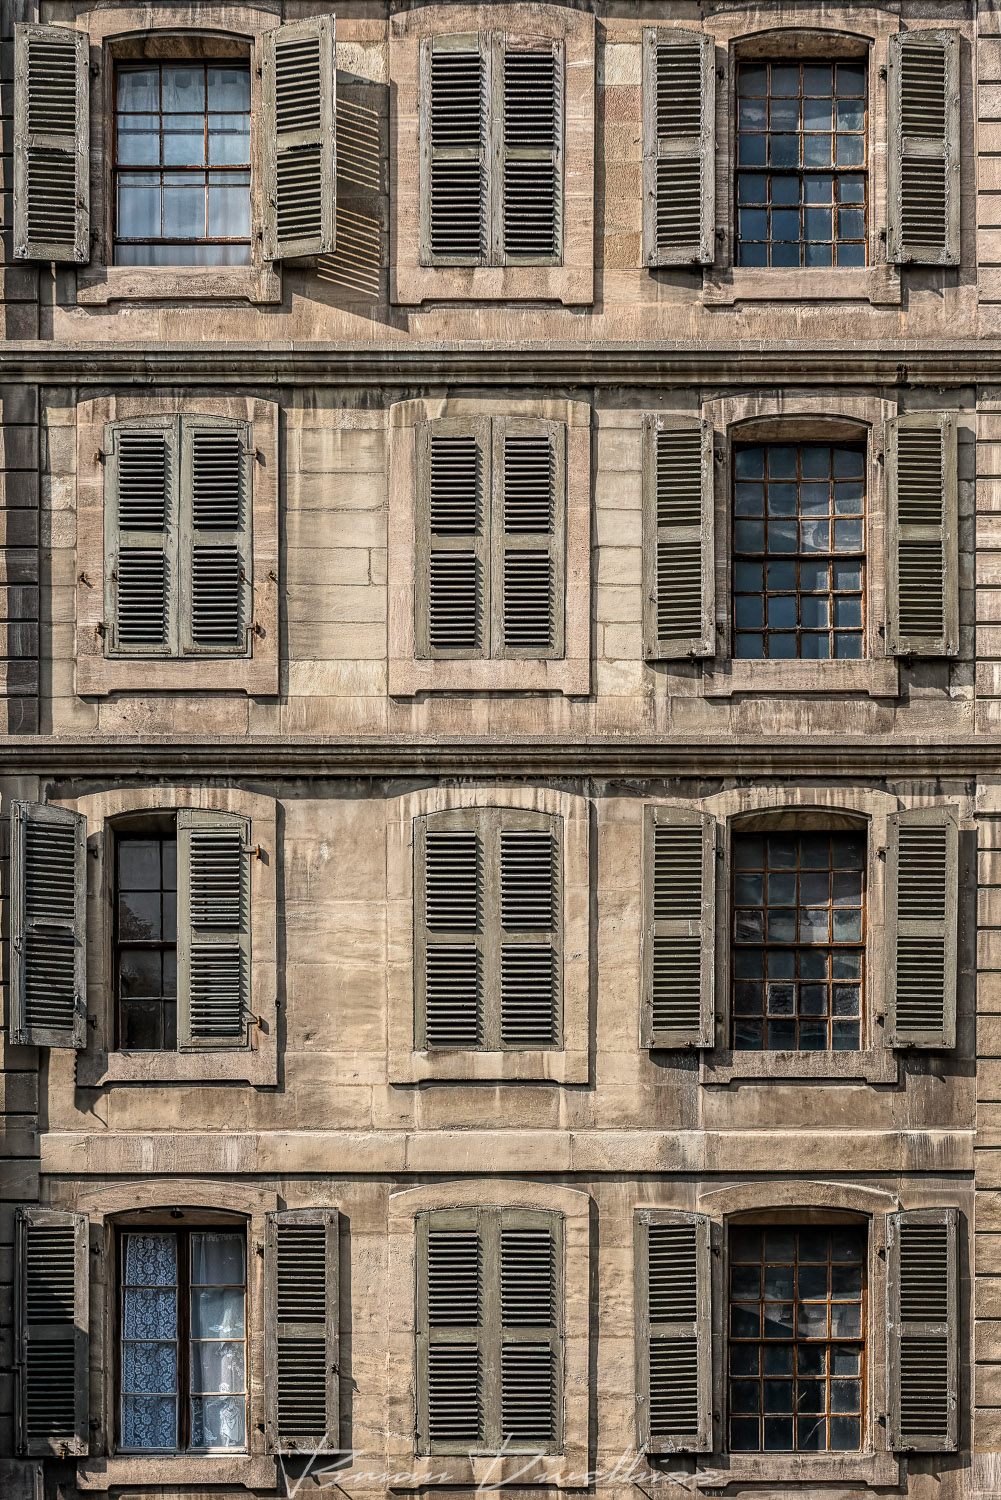 Wall of shutters in the Old City of Geneve, Switzerland.